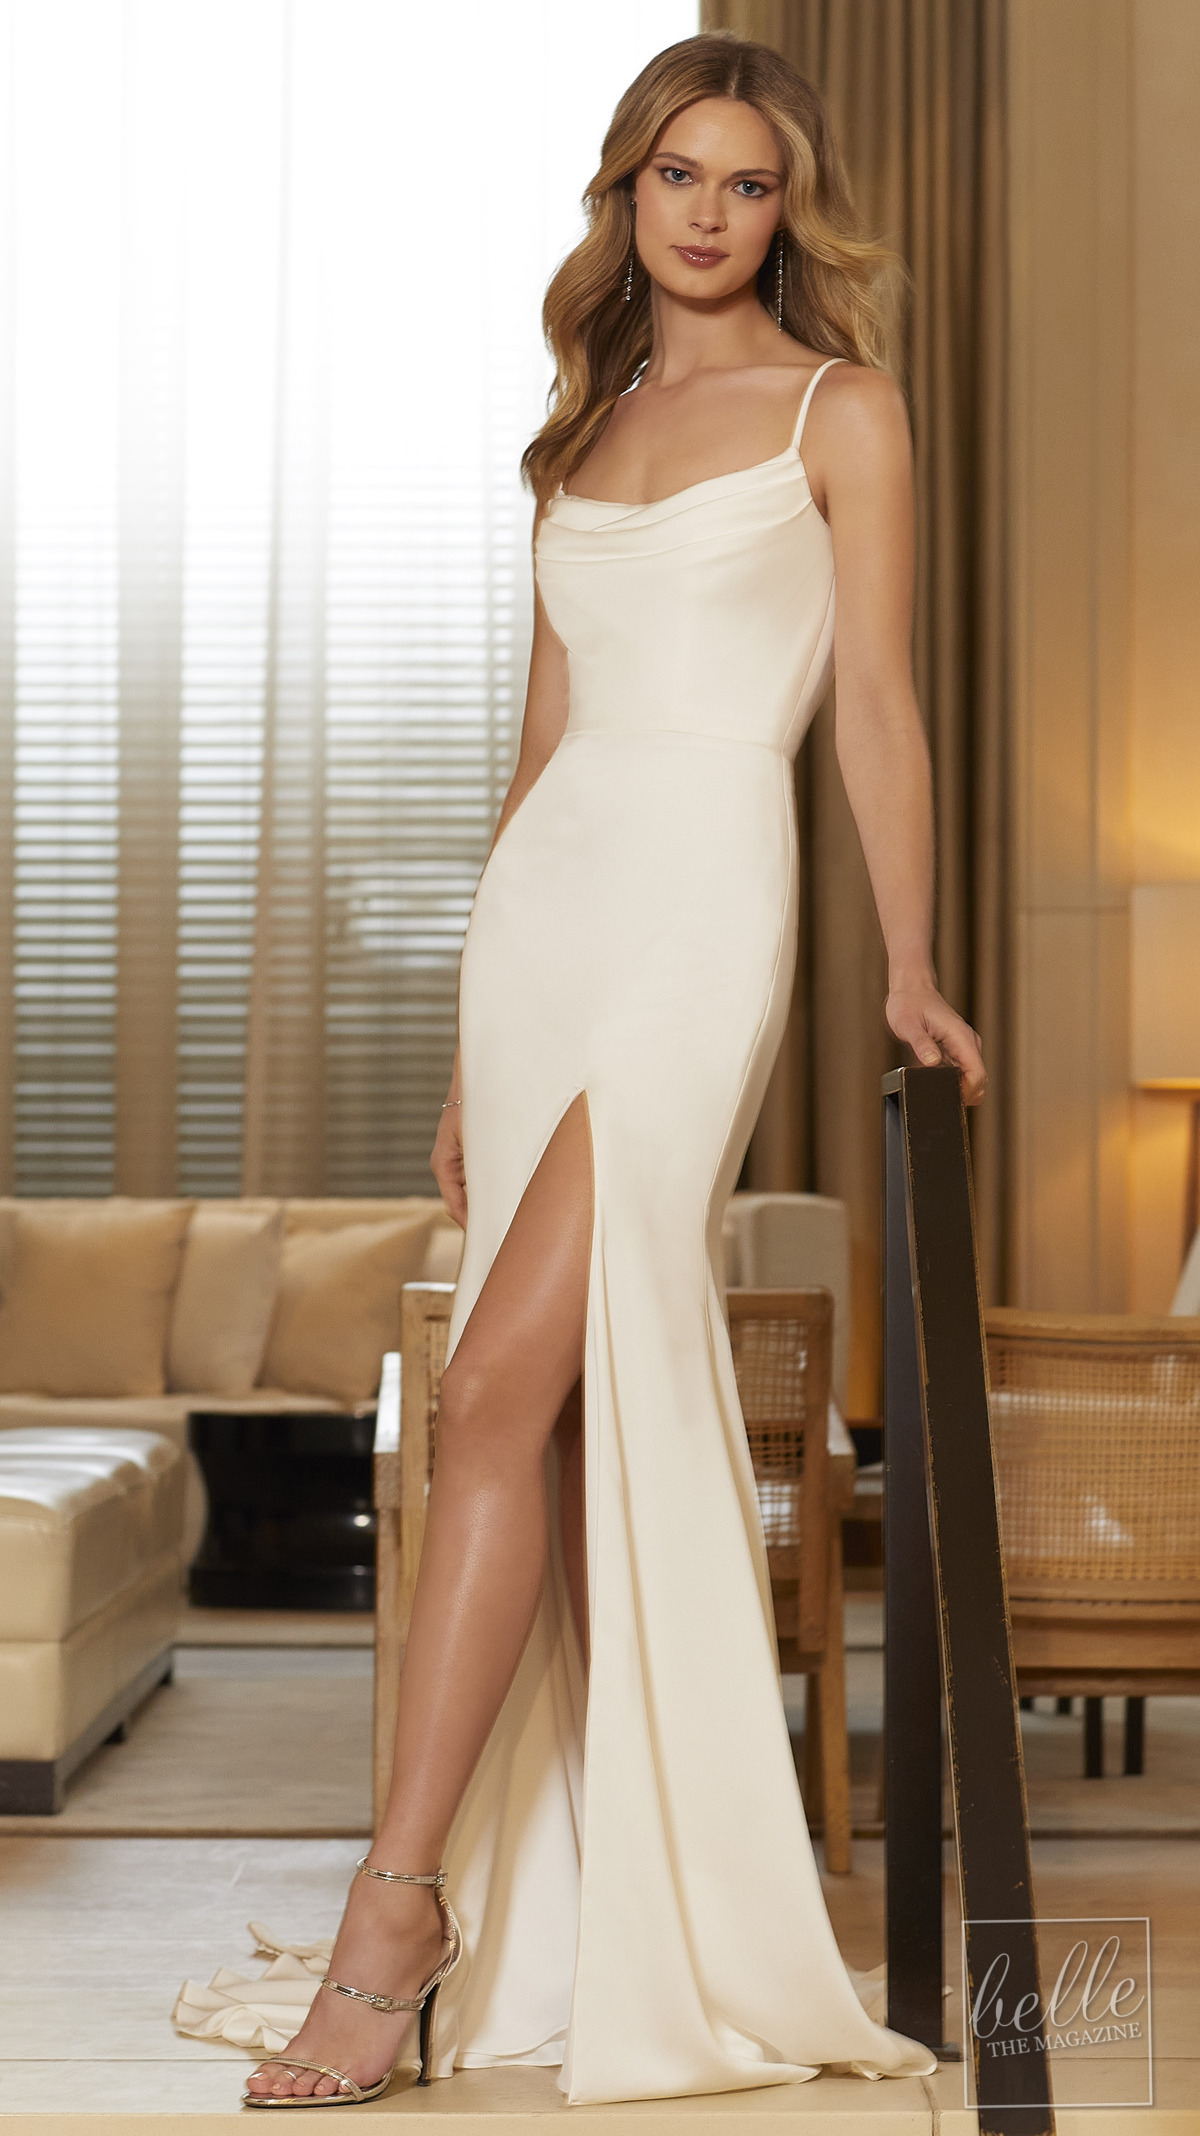 Wedding dress trends 2021 - Minimalist gown -The Other White Dress by Morilee